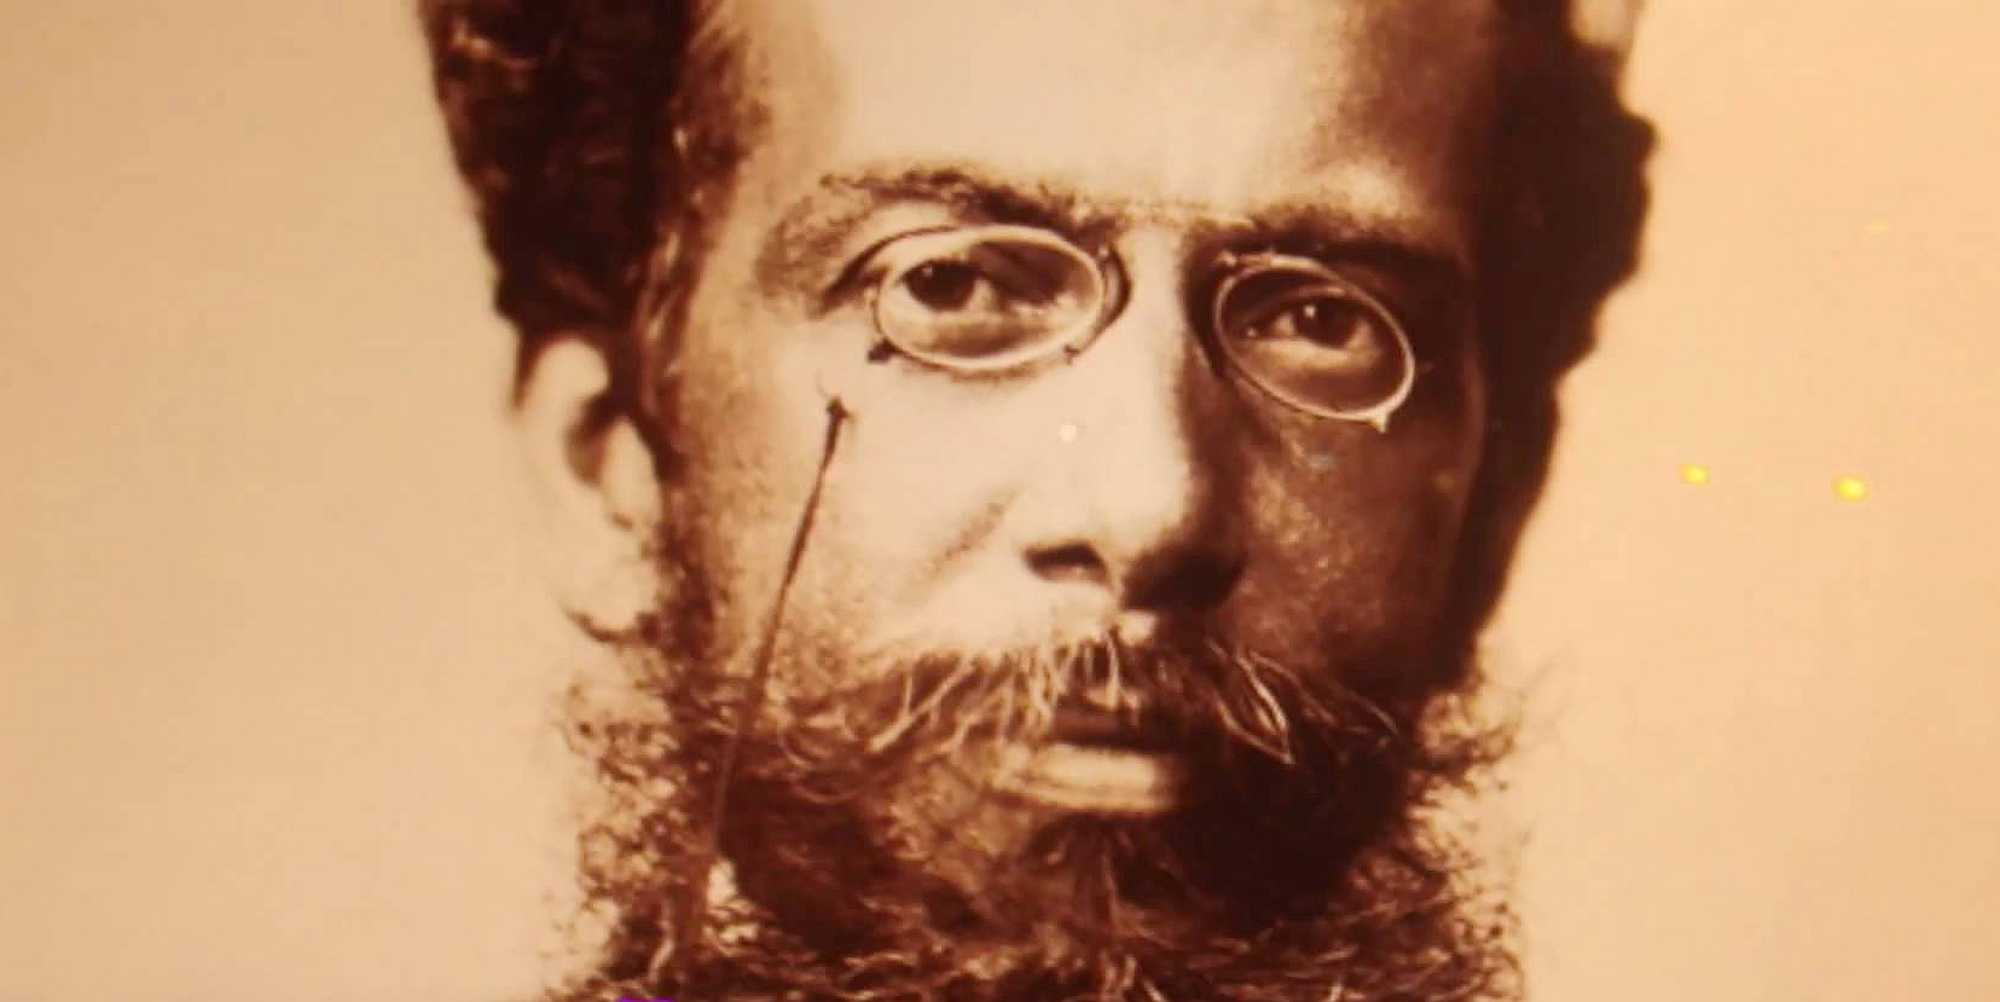 Brazilian writer Machado de Assis